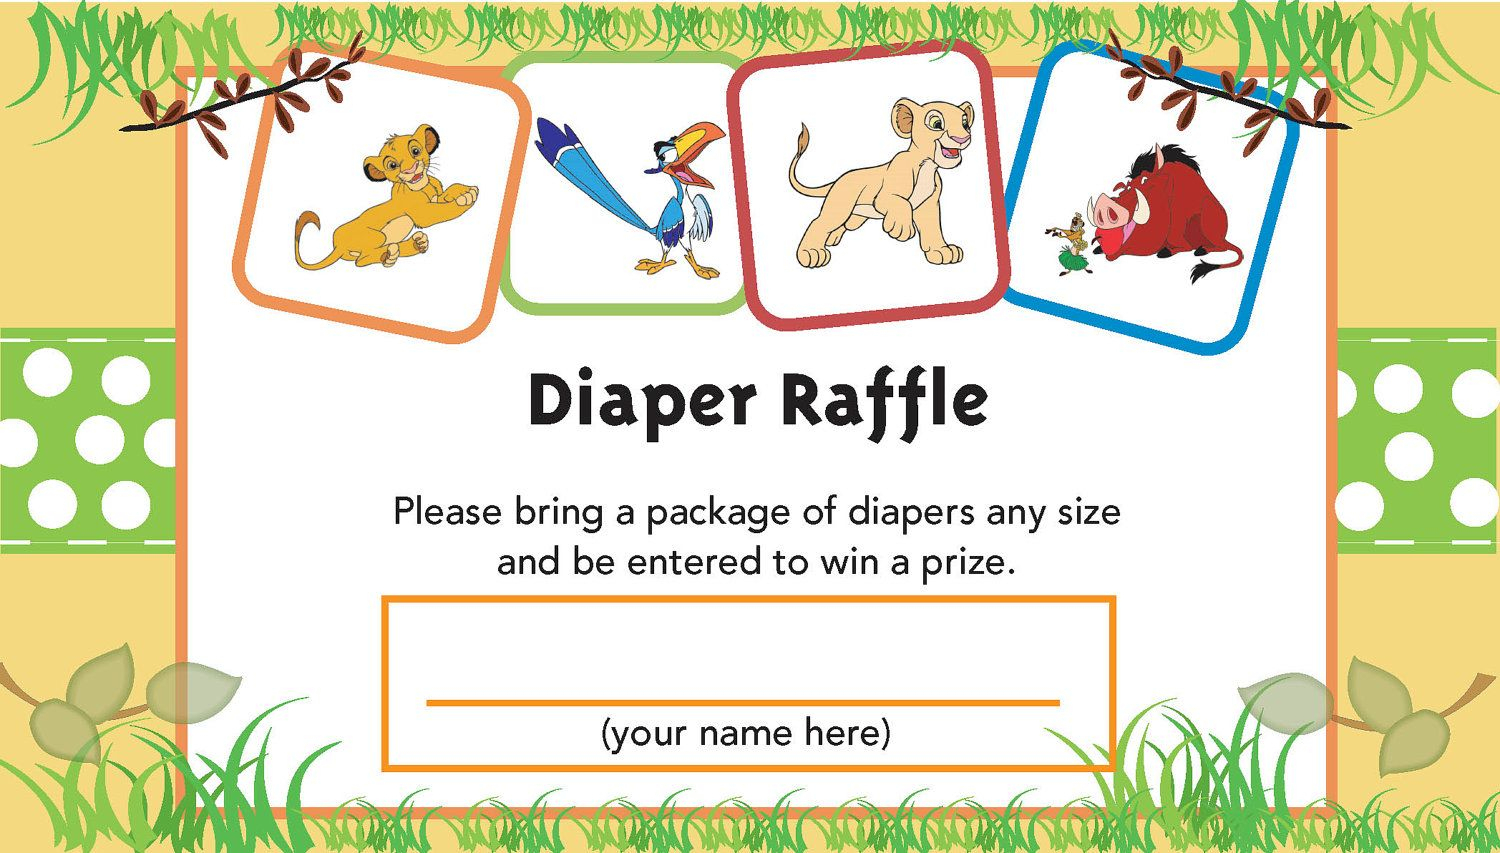 Lion King Printable Diaper Raffle Ticket | Baby Shower | Pinterest - Free Printable Lion King Baby Shower Invitations